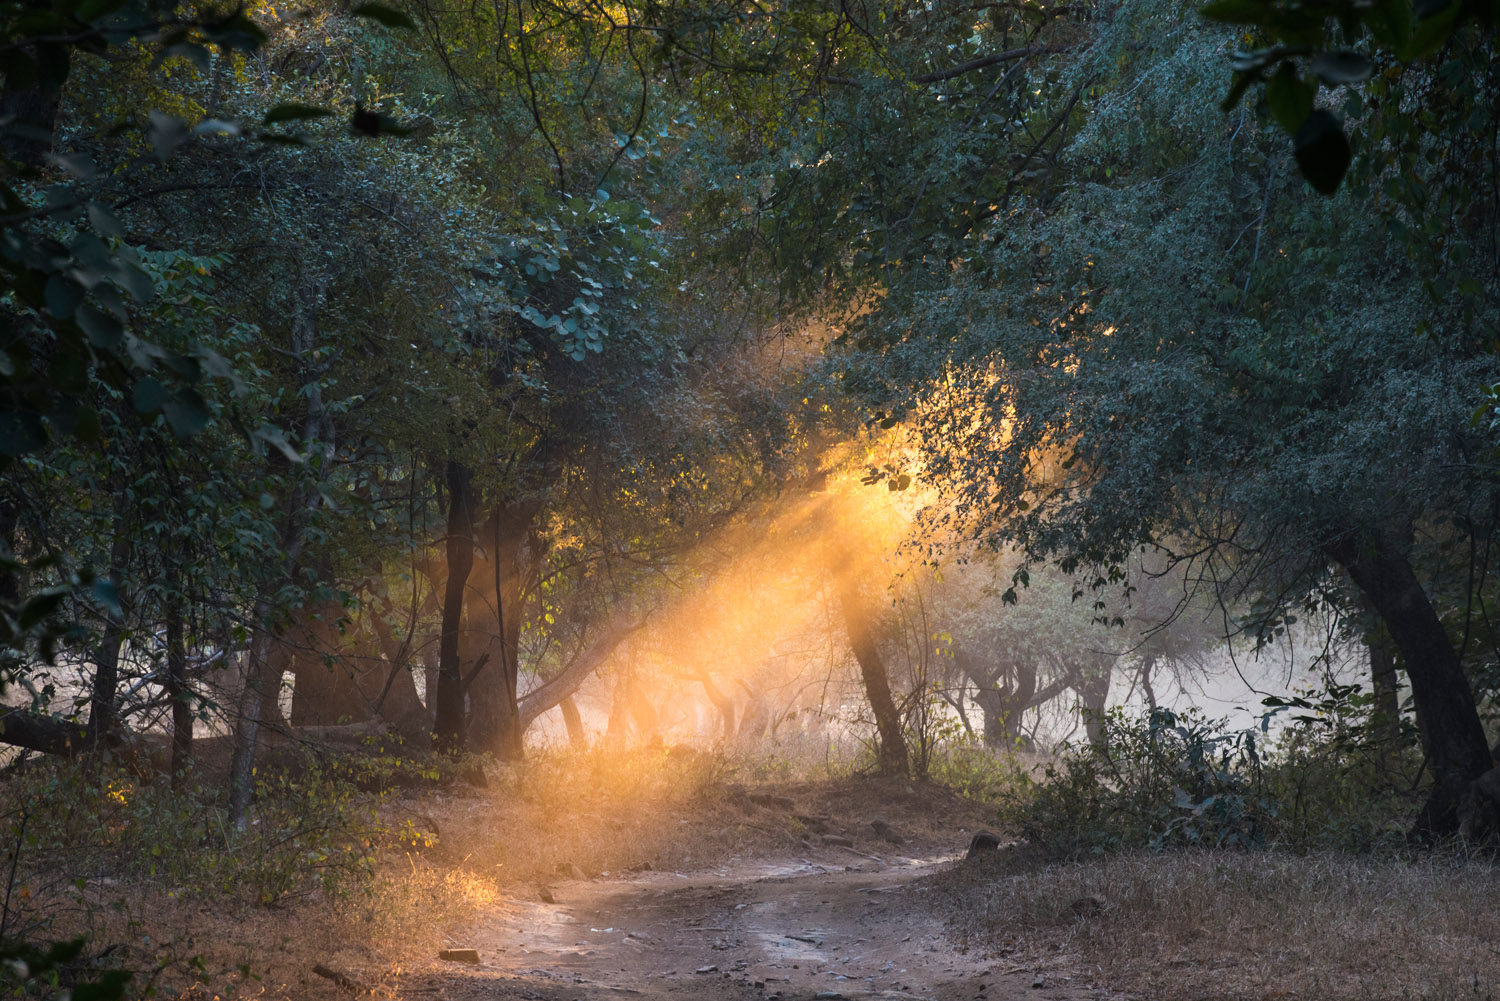 Evening sun rays falling on forest track, Ranthambhore National Park, Rajasthan, India